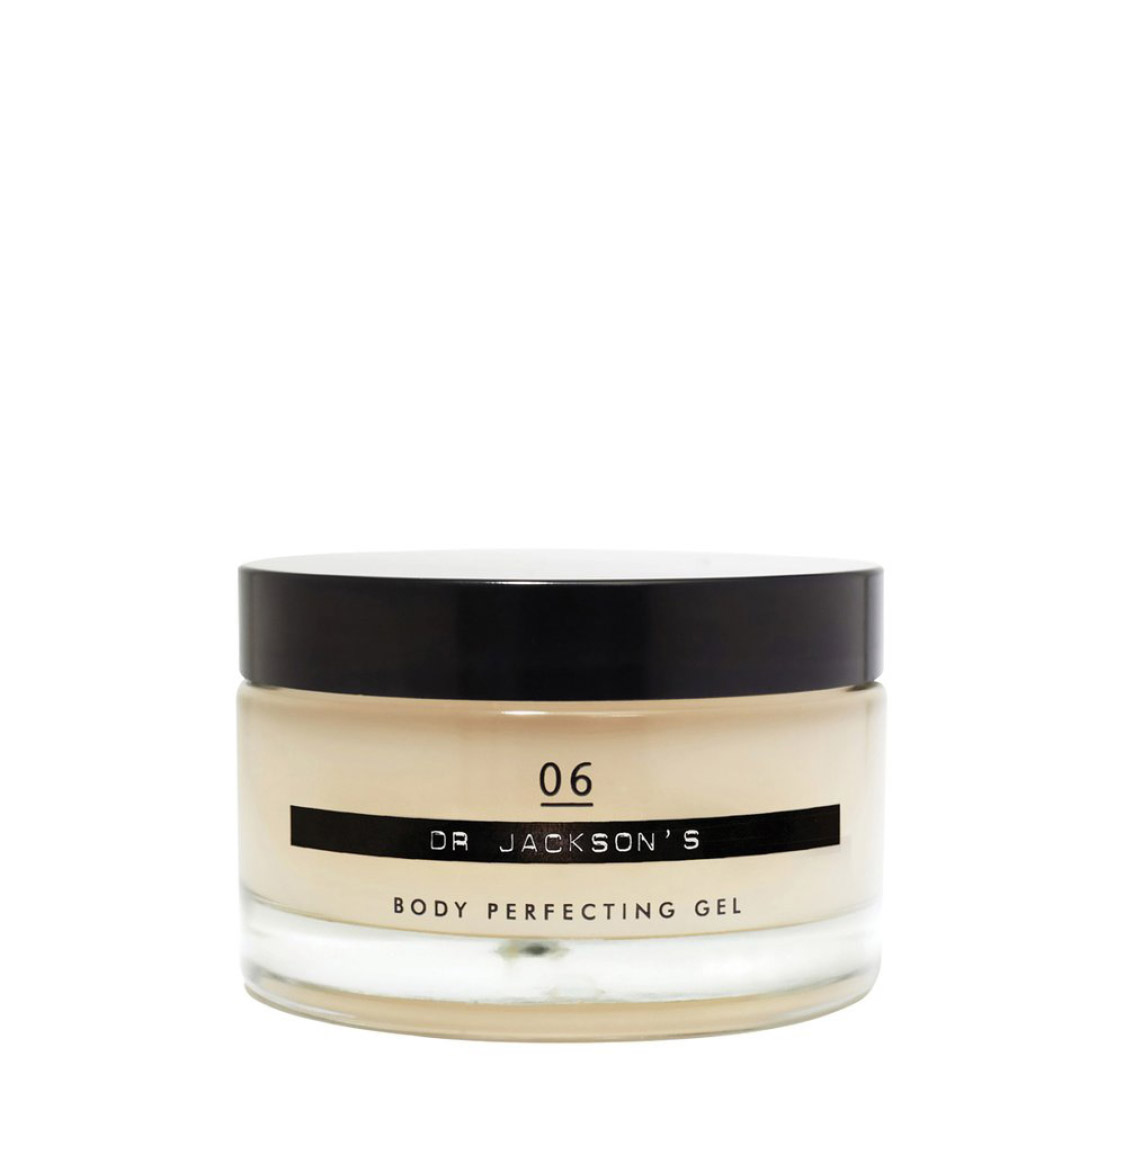 Dr_Jacksons_06_Body_Perfecting_Gel_200ml_The_Project_Garments_A1